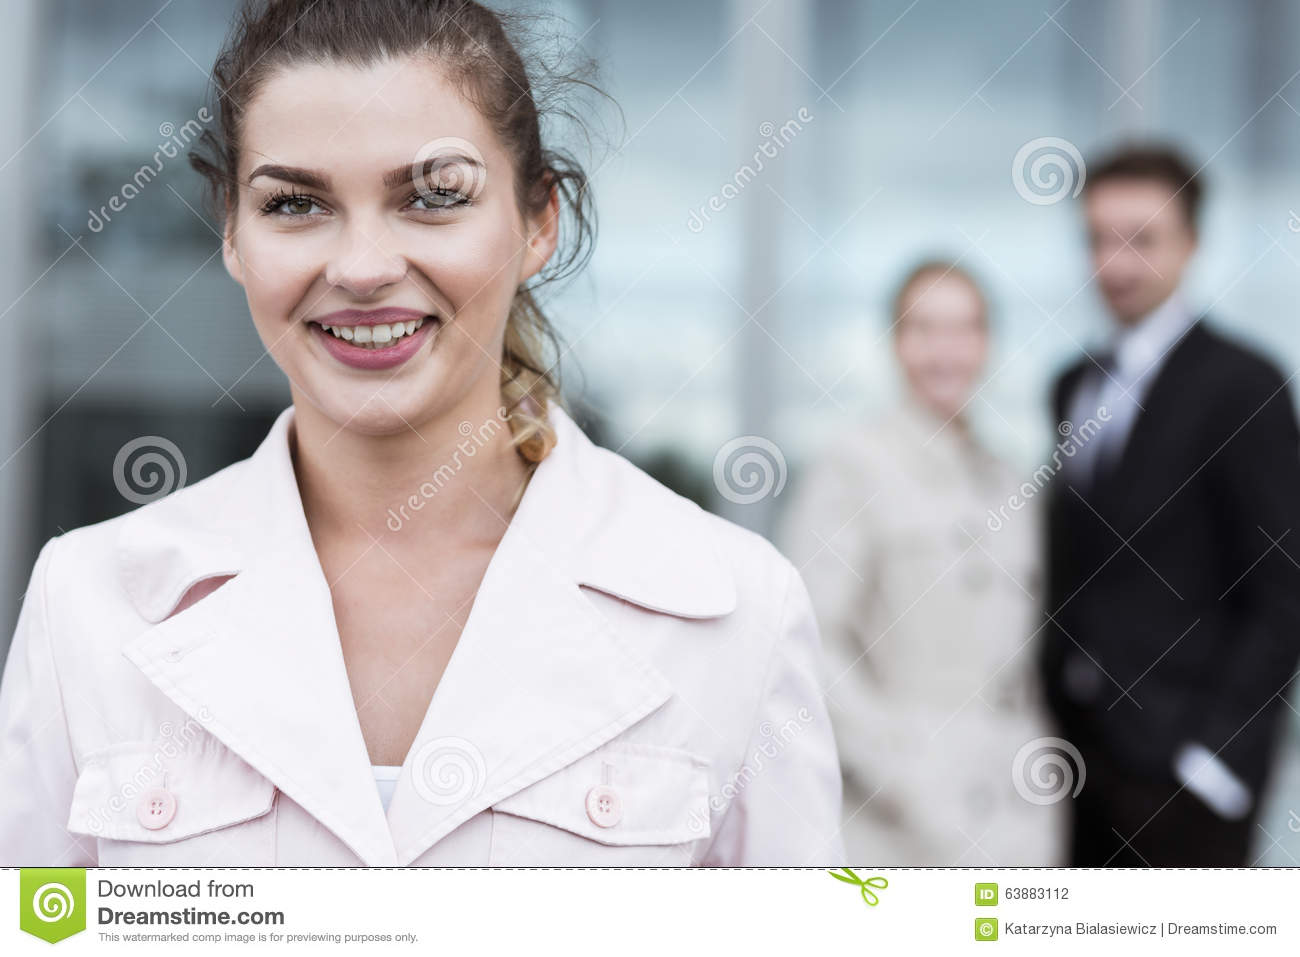 Smiling beauty businesswoman